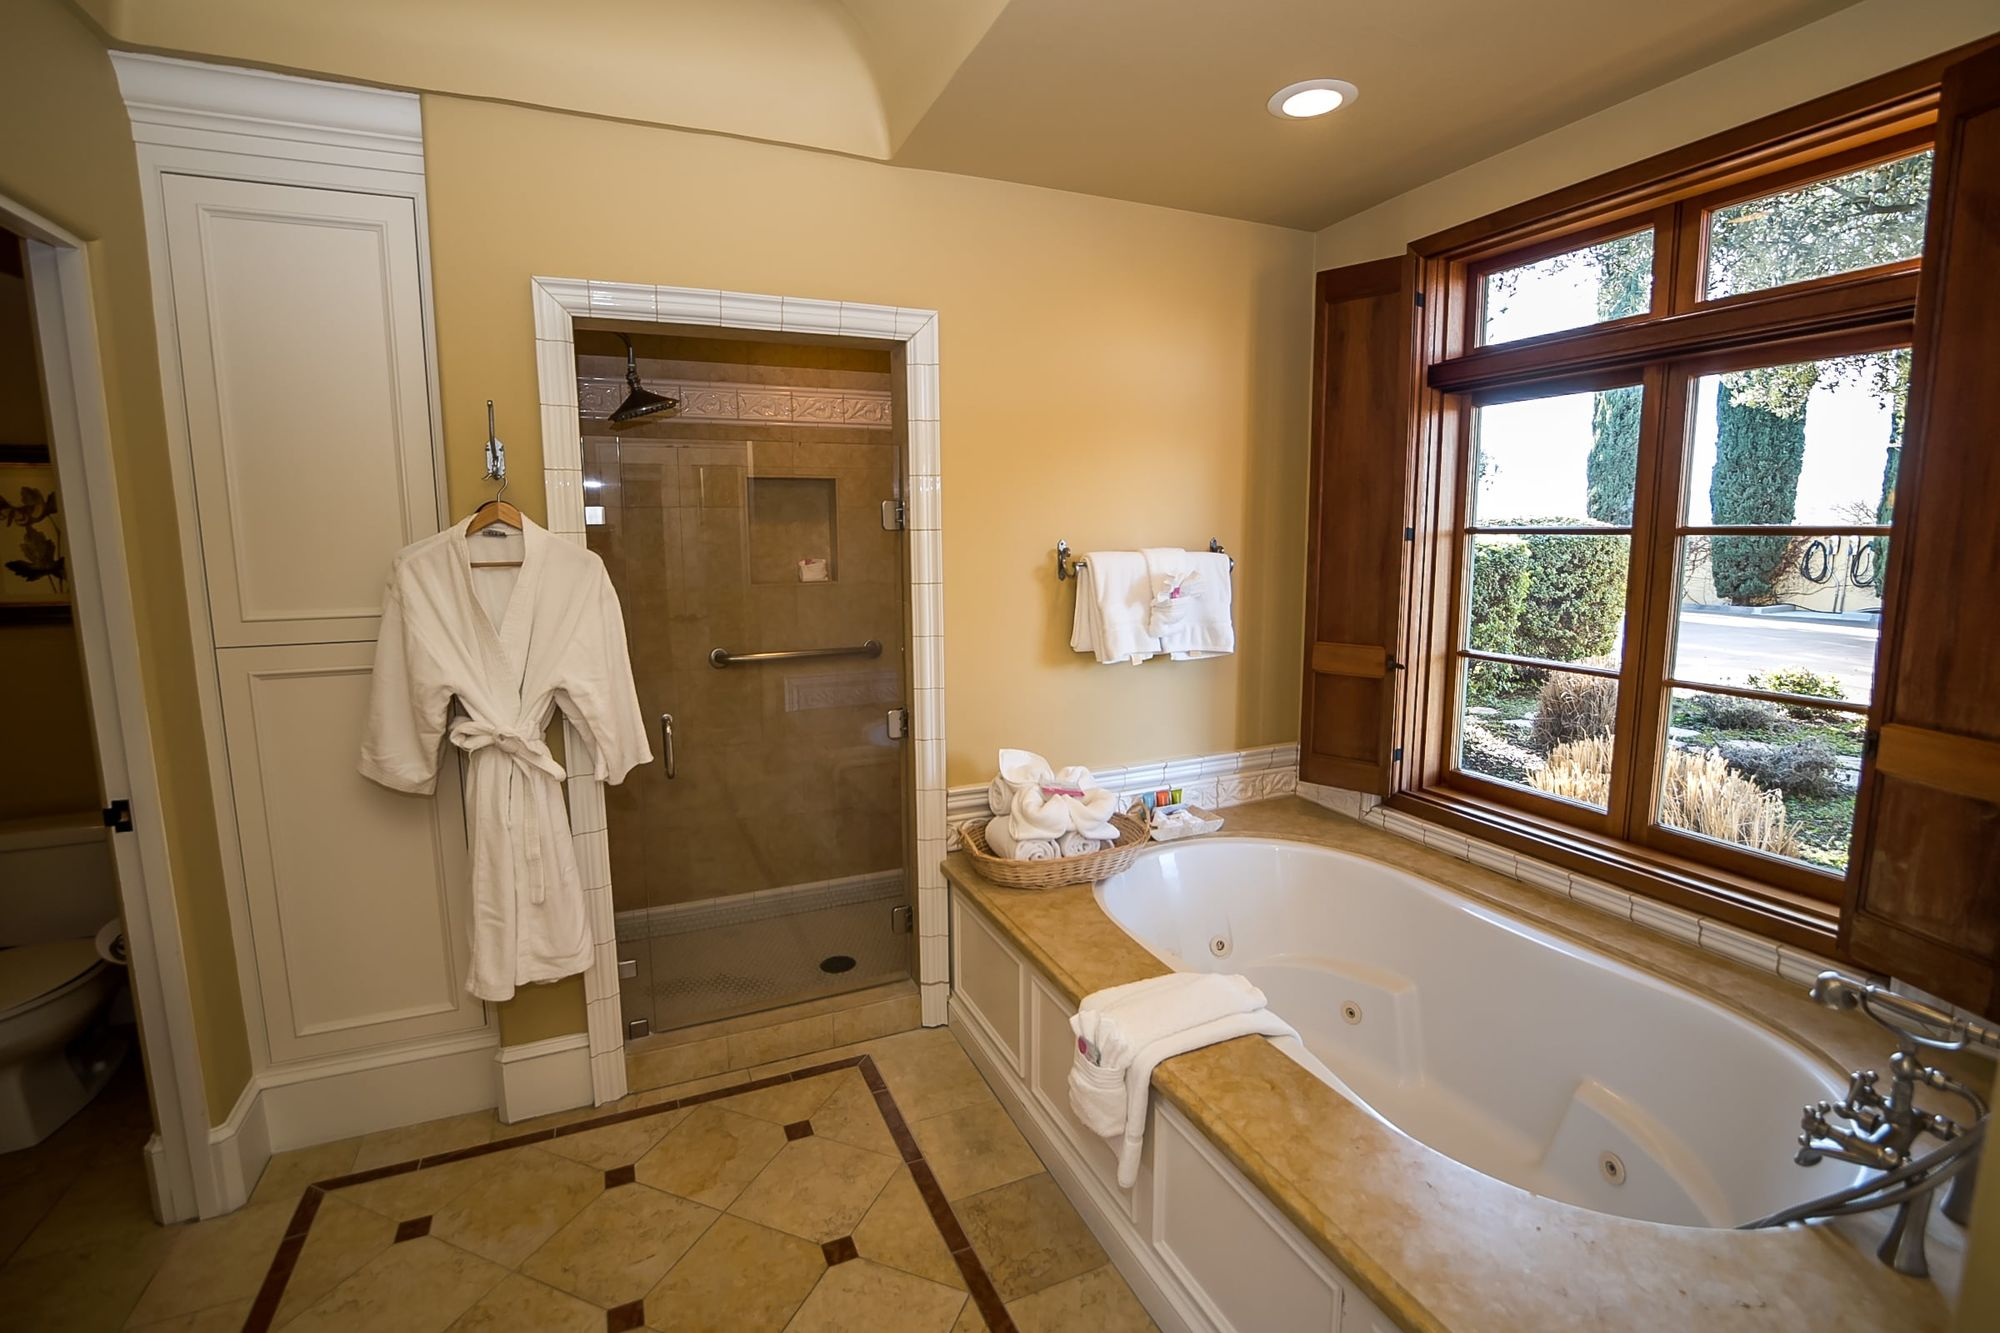 Spa bathtub with walk in shower to the side and a robe hanging on a hook